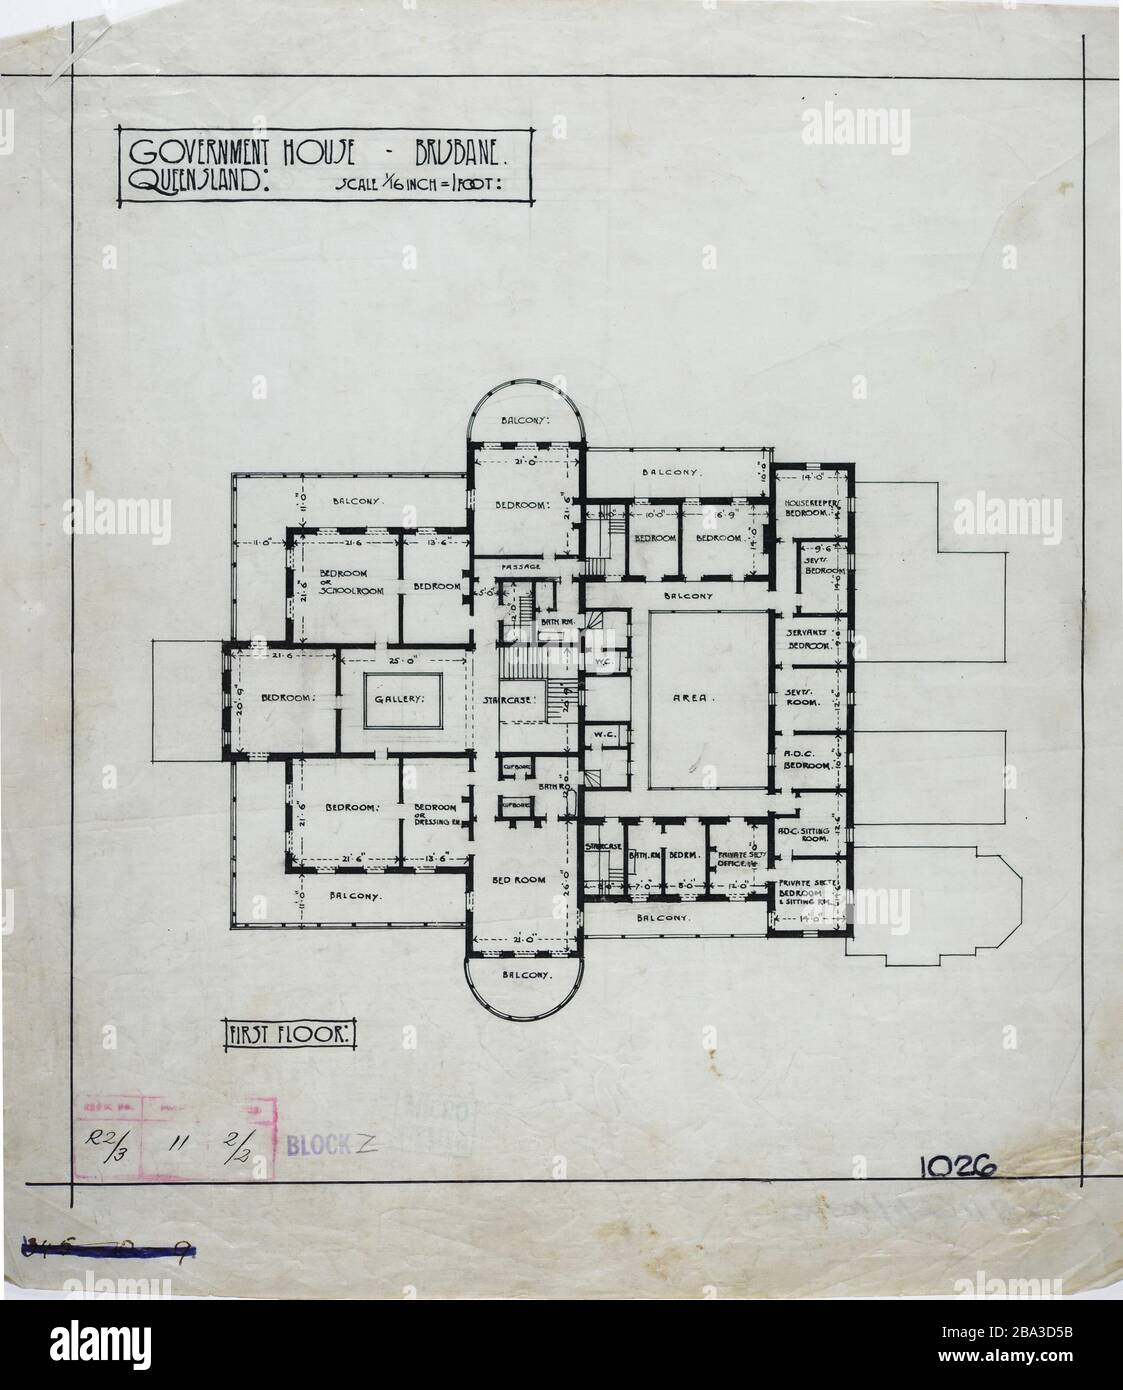 English First Floor Plan Of Government House Brisbane C 1940 15 April 2012 00 55 02 First Floor Plan Of Government House Brisbane C 1940 Published By Queensland State Archives Unknown Author Stock Photo Alamy